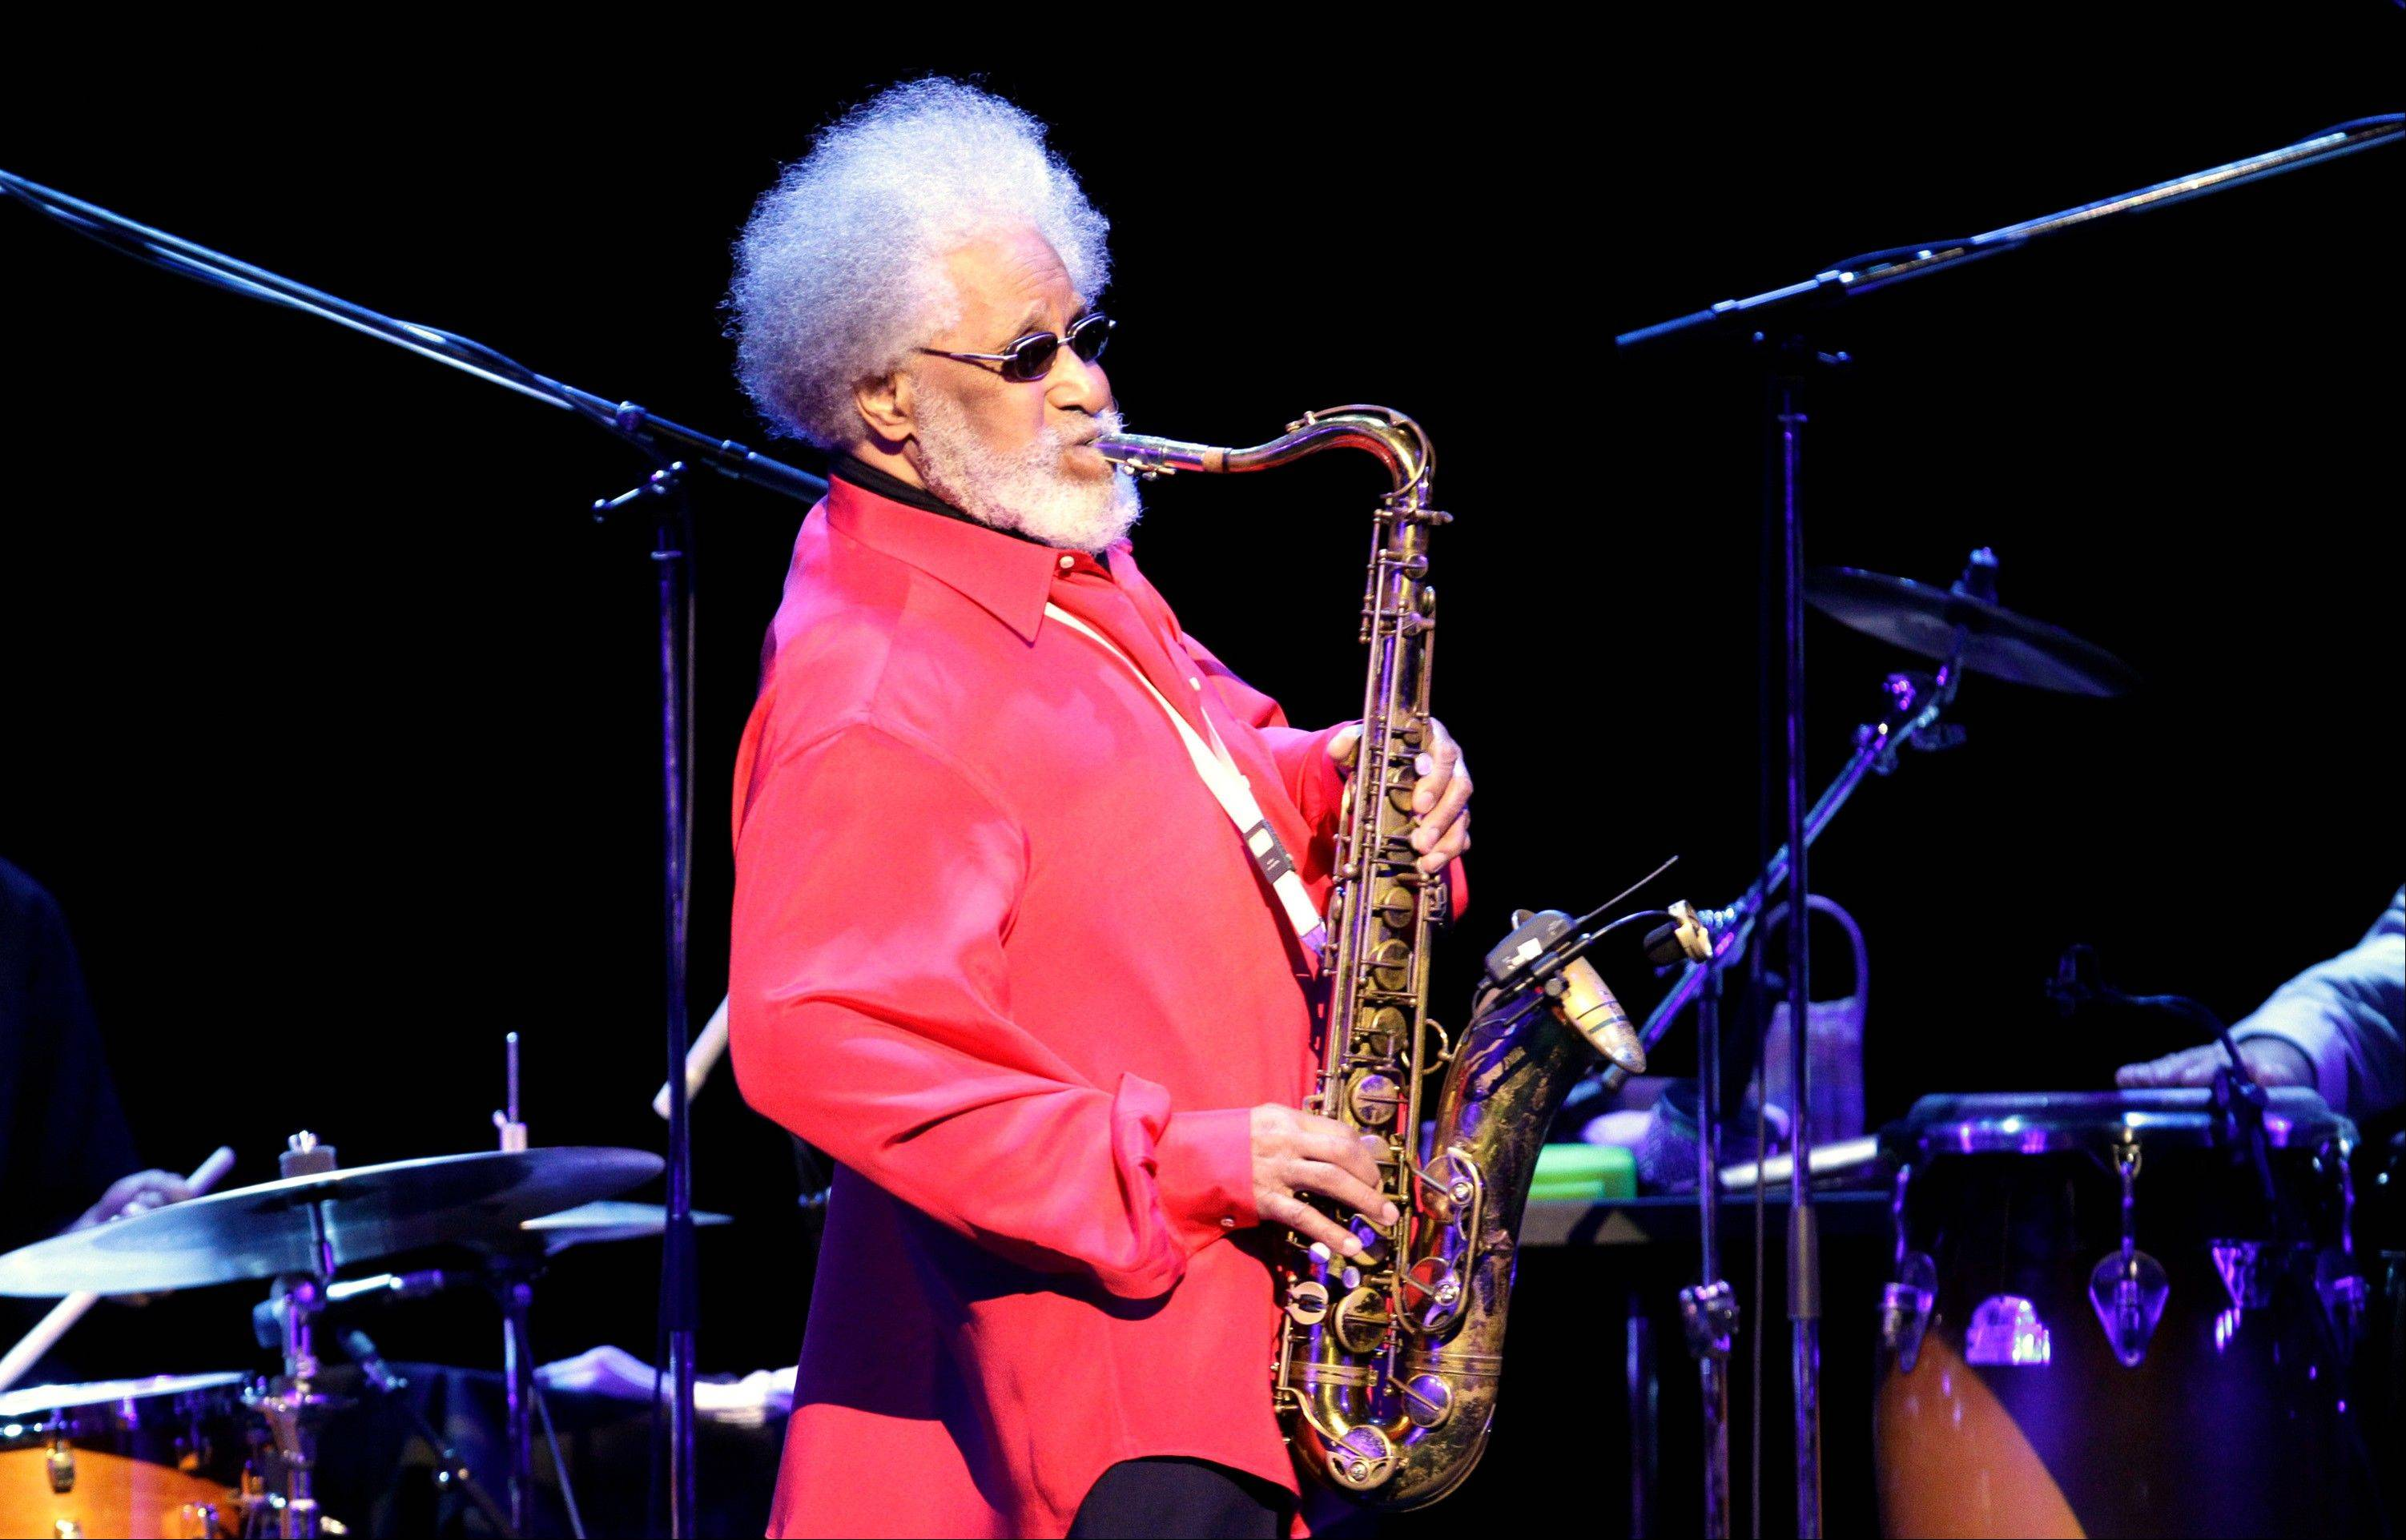 Jazz great Sonny Rollins was a triple winner Wednesday at the annual Jazz Awards, garnering musician of the year honors for the second straight year.